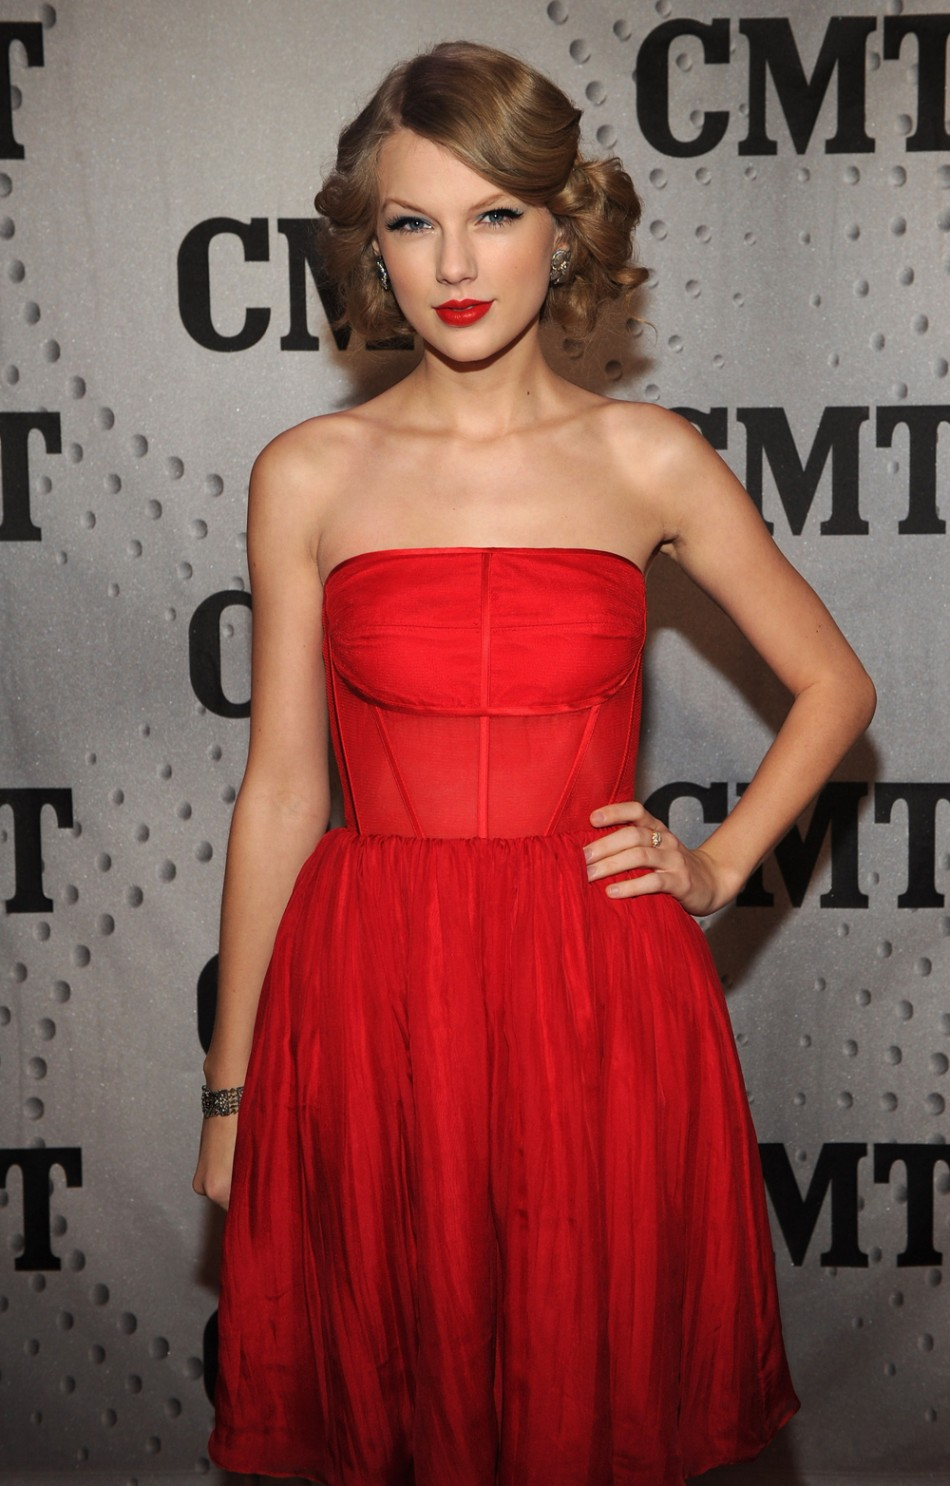 Taylor Swifts Fashion Evolution through the Years